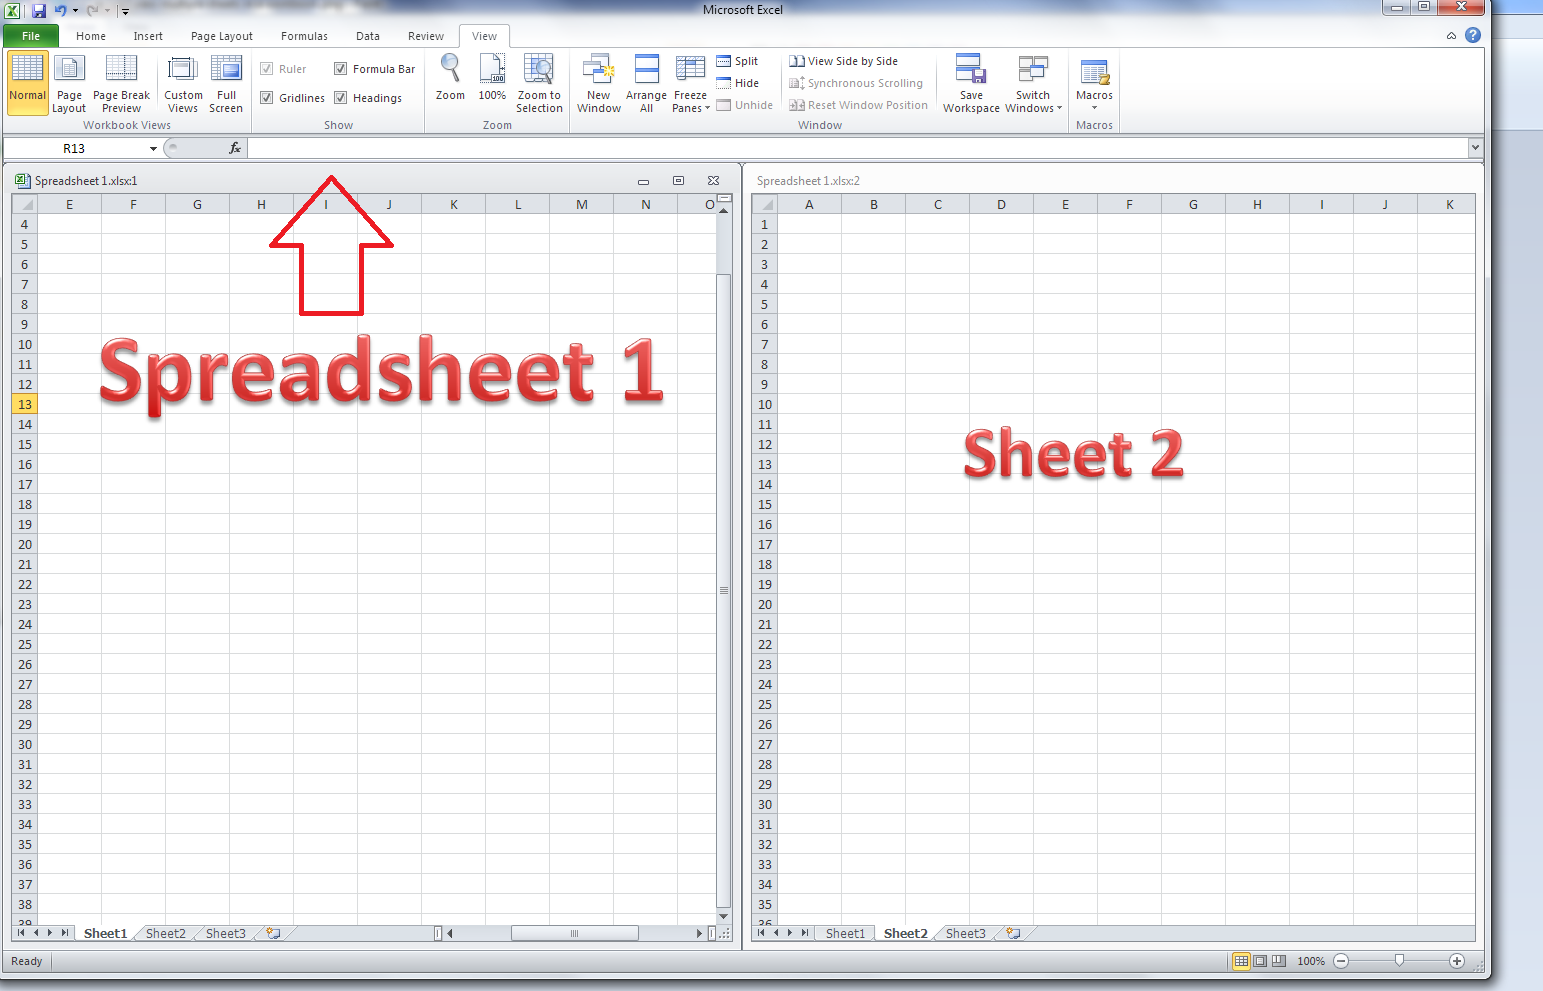 worksheet Excel Worksheet View how do i view two sheets of an excel workbook at the same time return to single sheet view